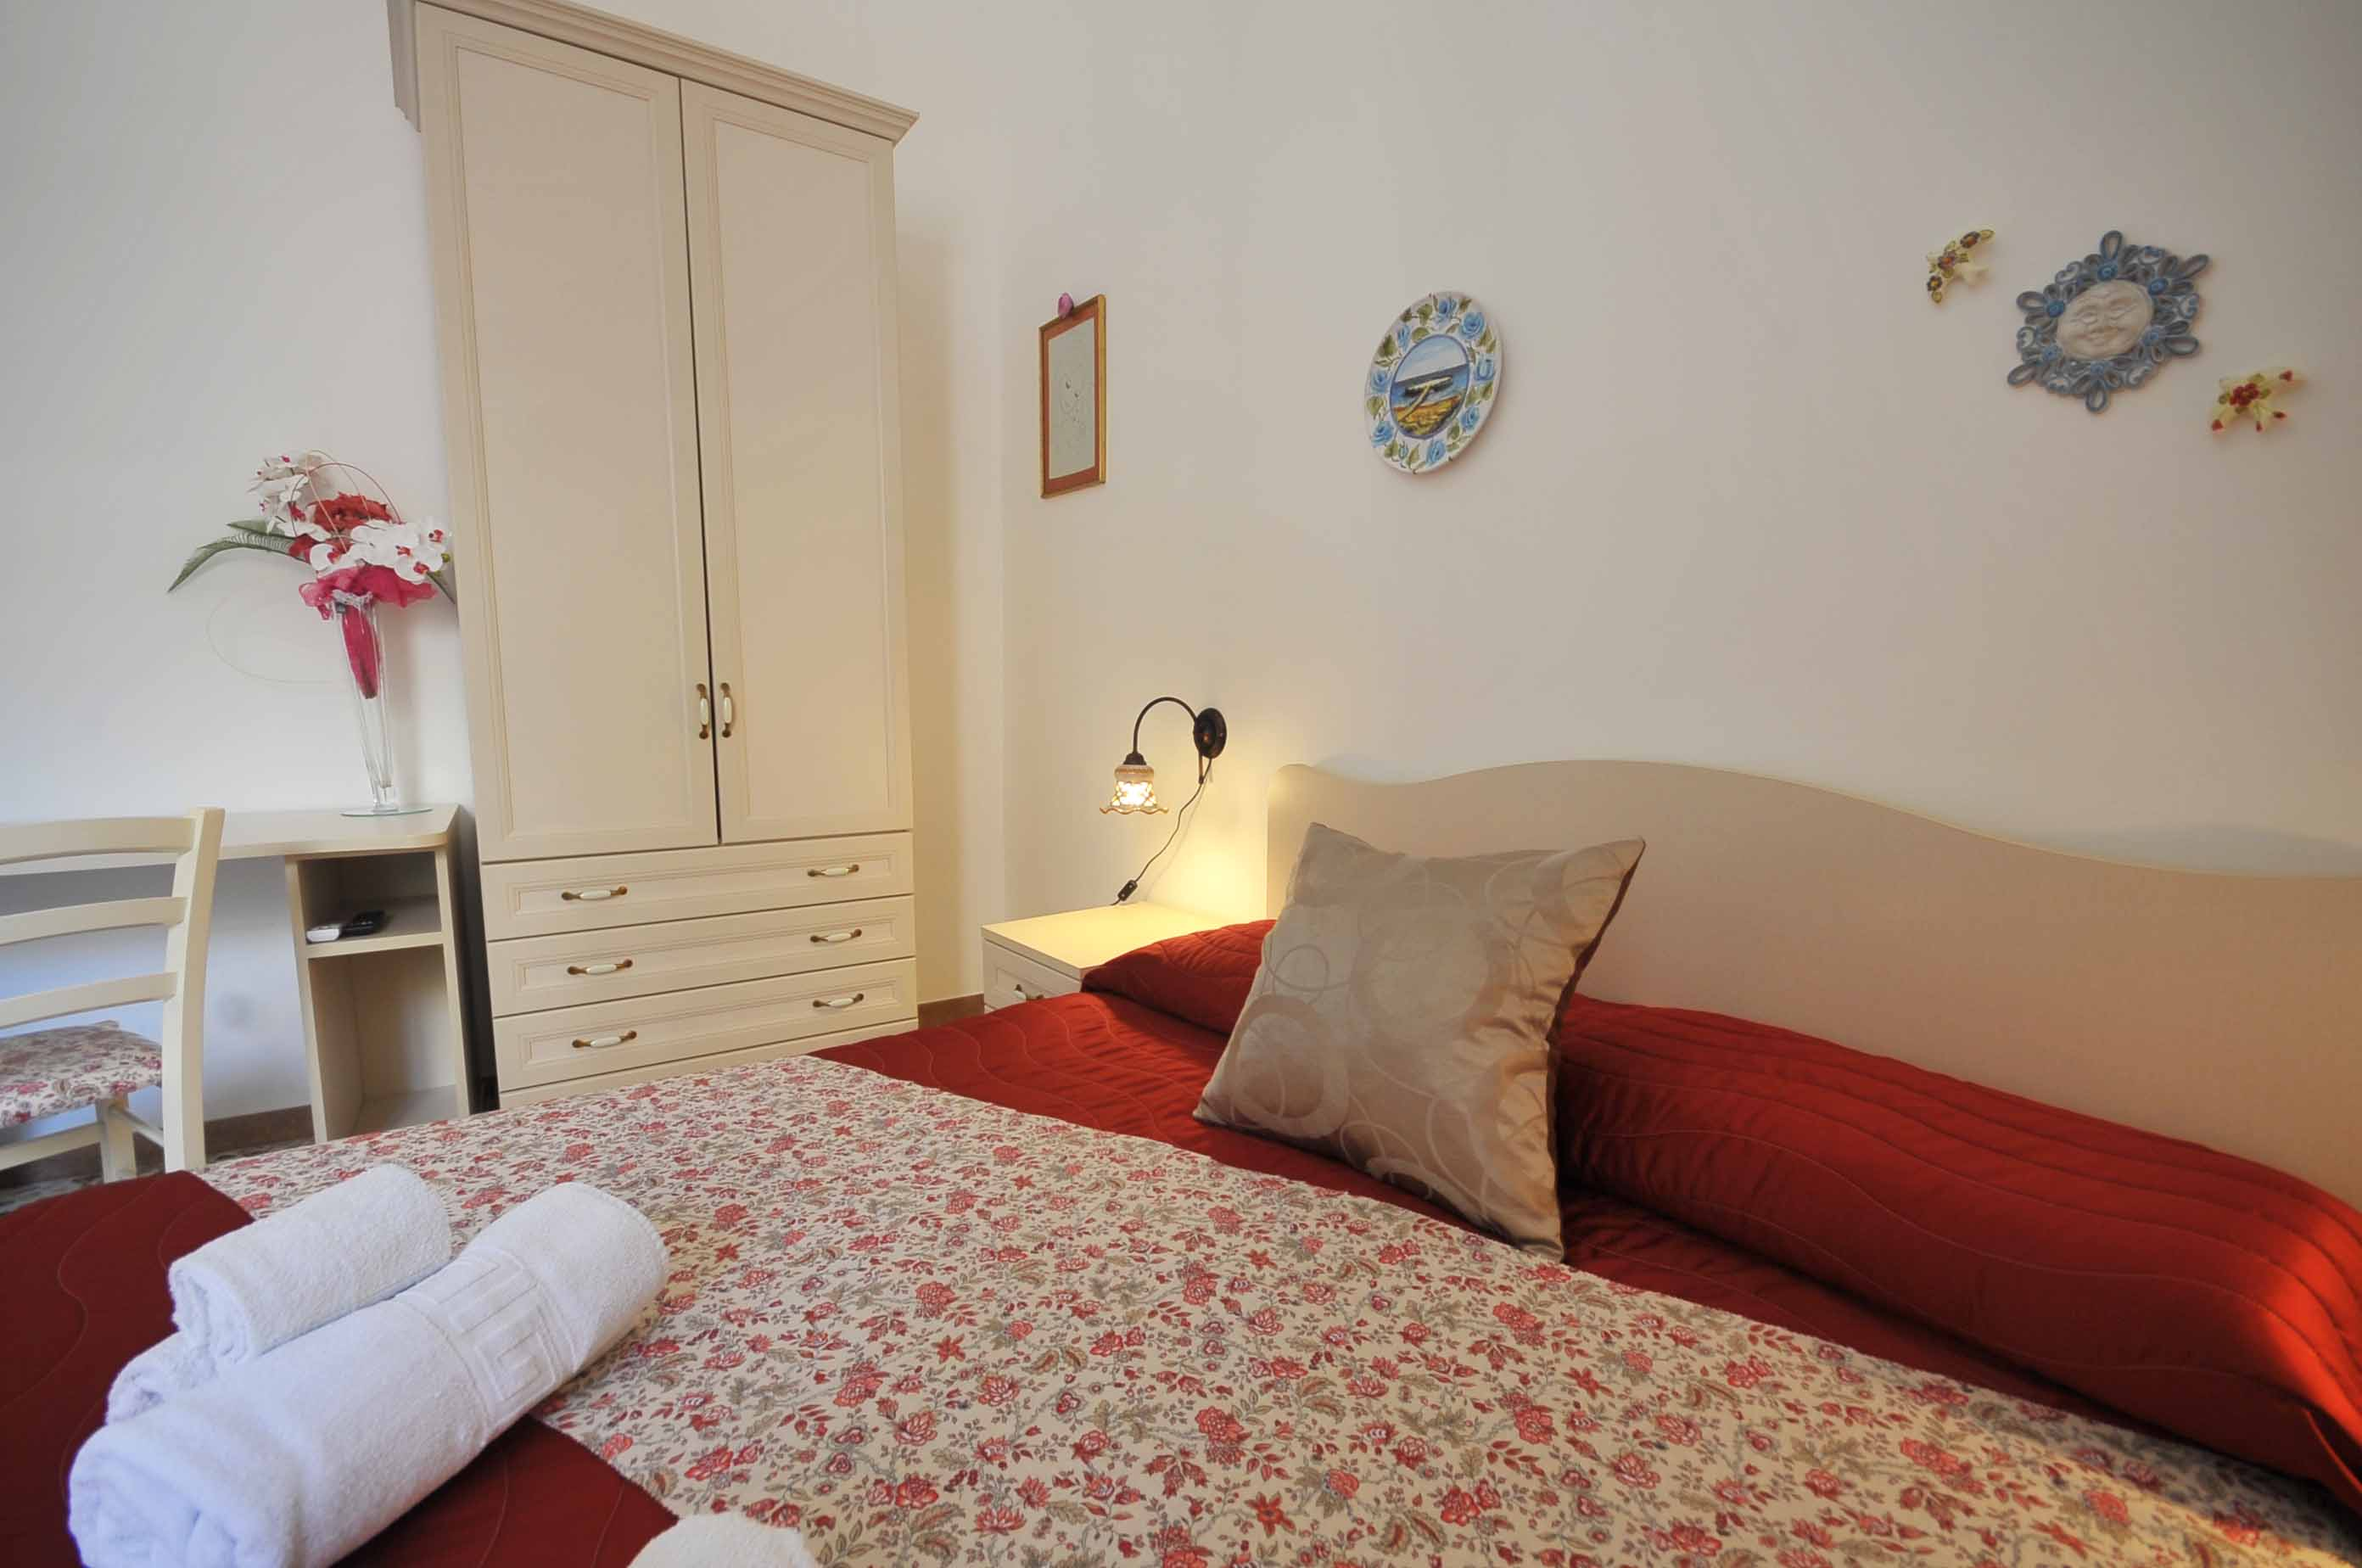 Athena_camera_familiare_B&B_Avola_siracusa_bed_and_breakfast_5